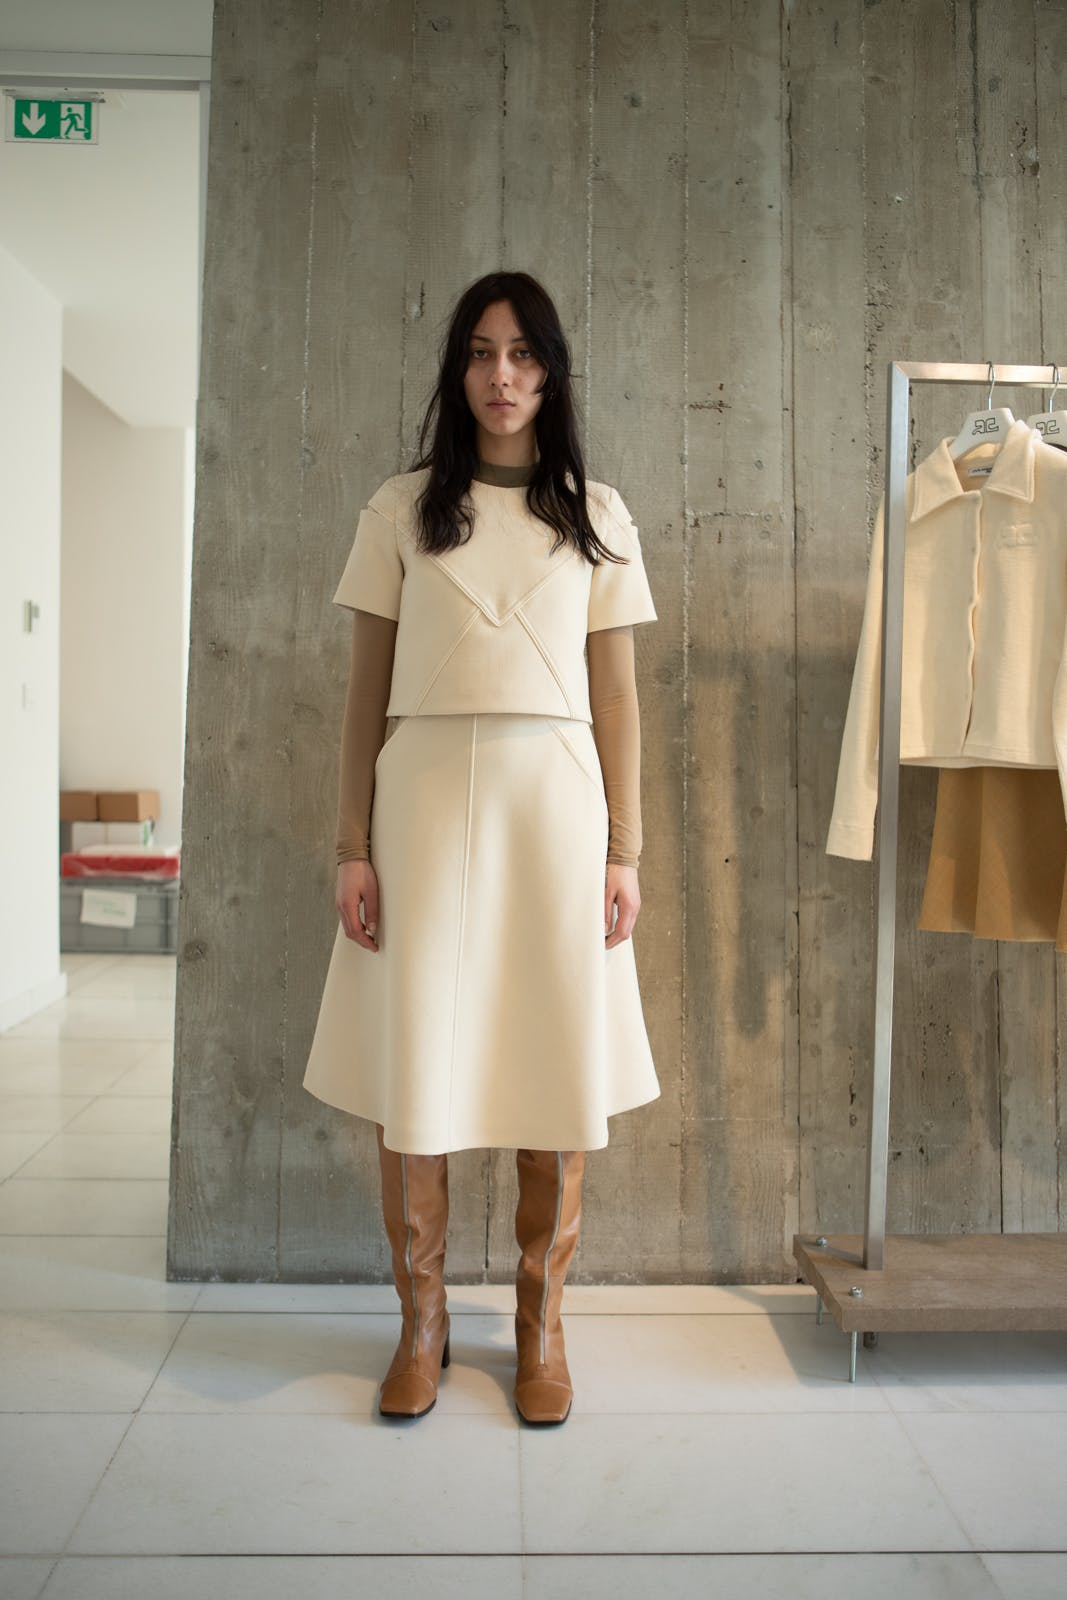 courreges fall winter 2020 runway show backstage womenswear showroom pre order trunk show paris